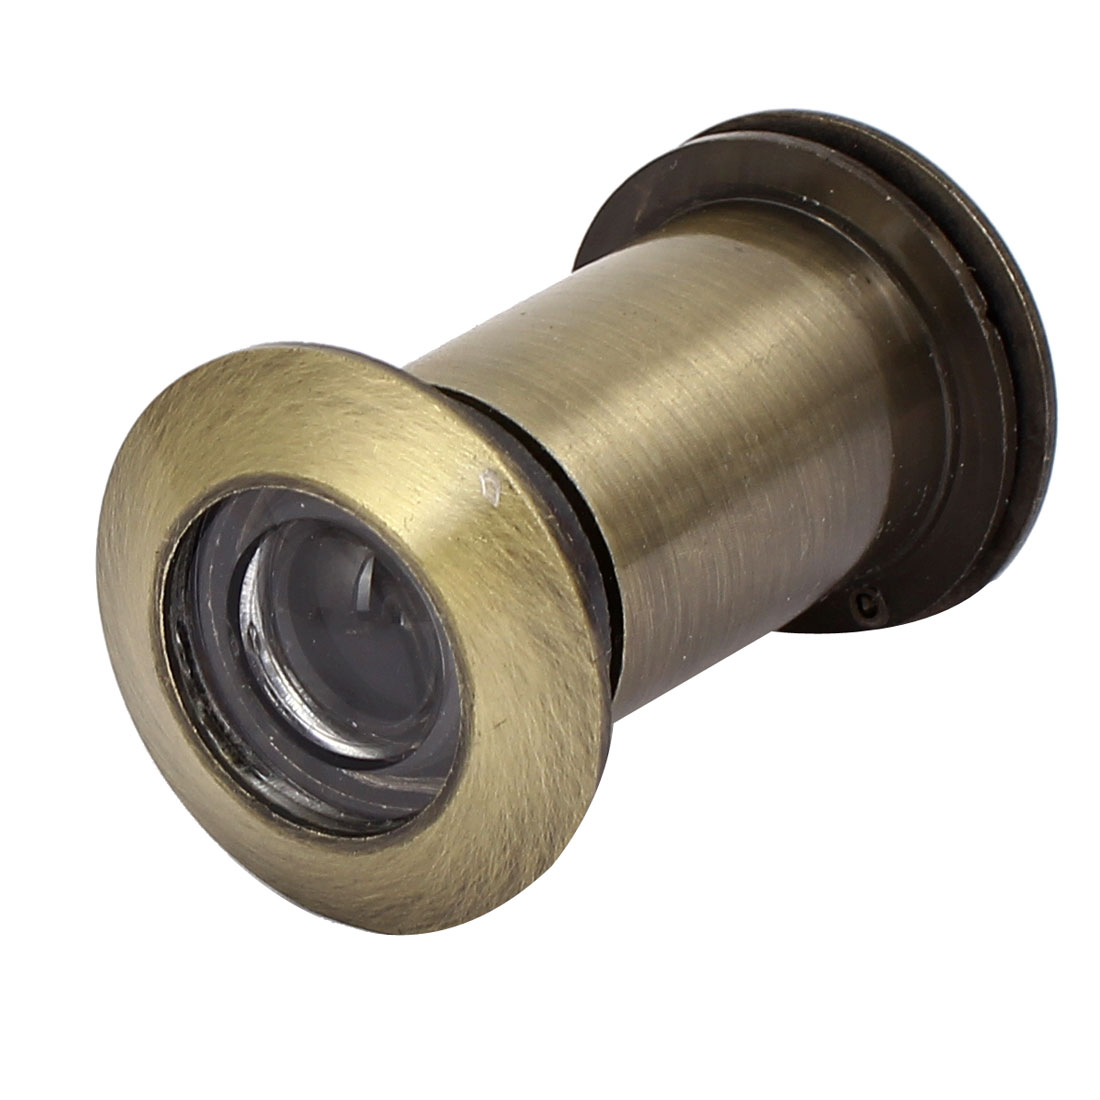 26mm Diameter 220 Degree Wide Angle Door Viewer Peephole Bronze Tone